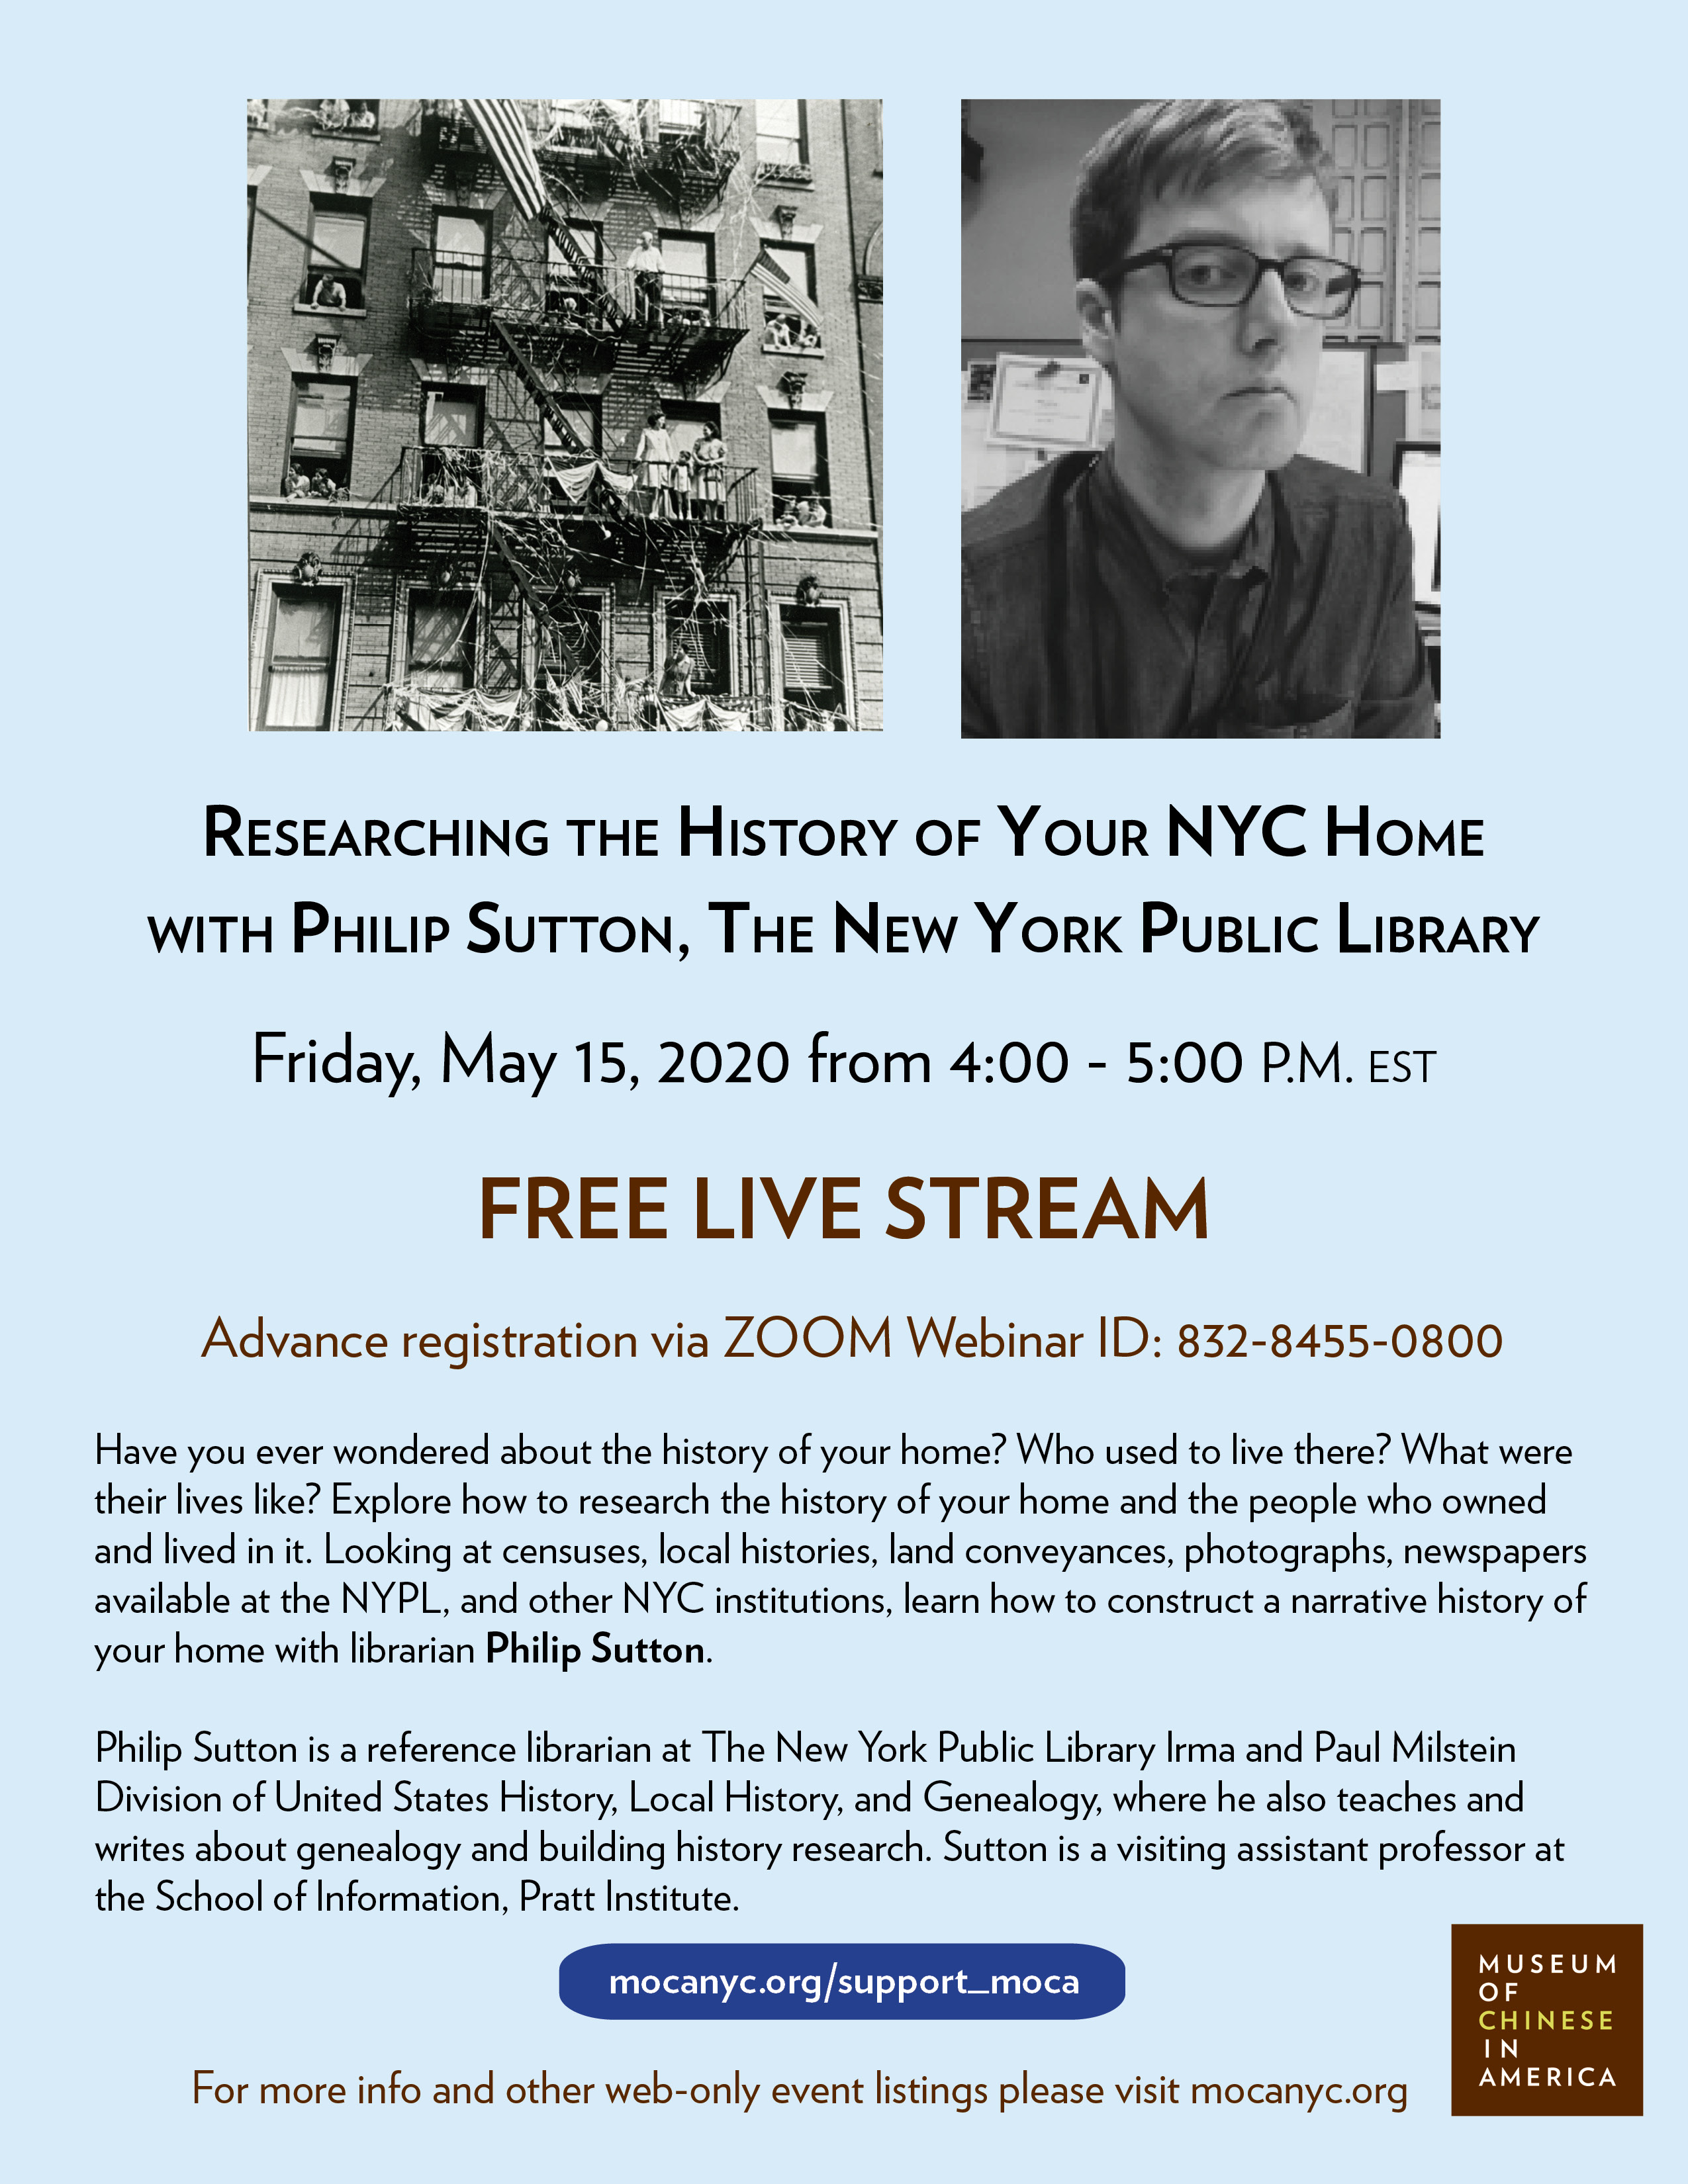 [LIVE STREAM] Researching the History of Your NYC Home with the NYPL